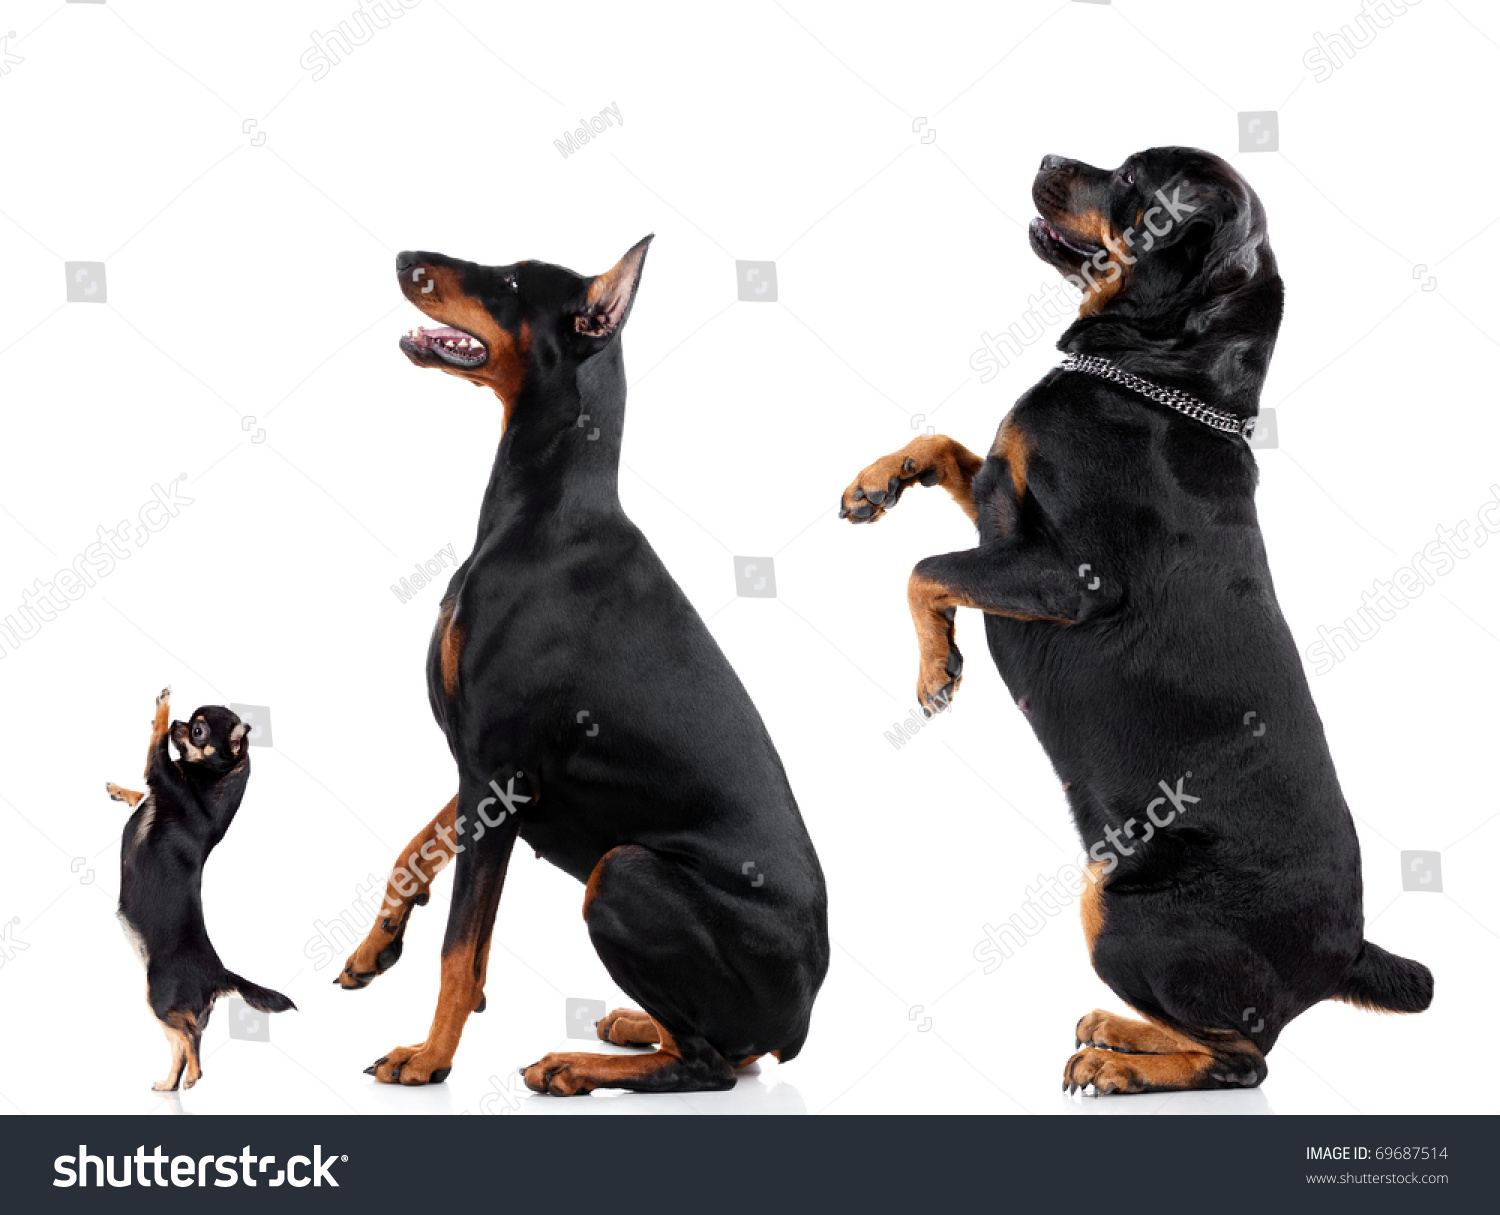 Royalty-free Group of dogs (Chihuahua, Doberman ...